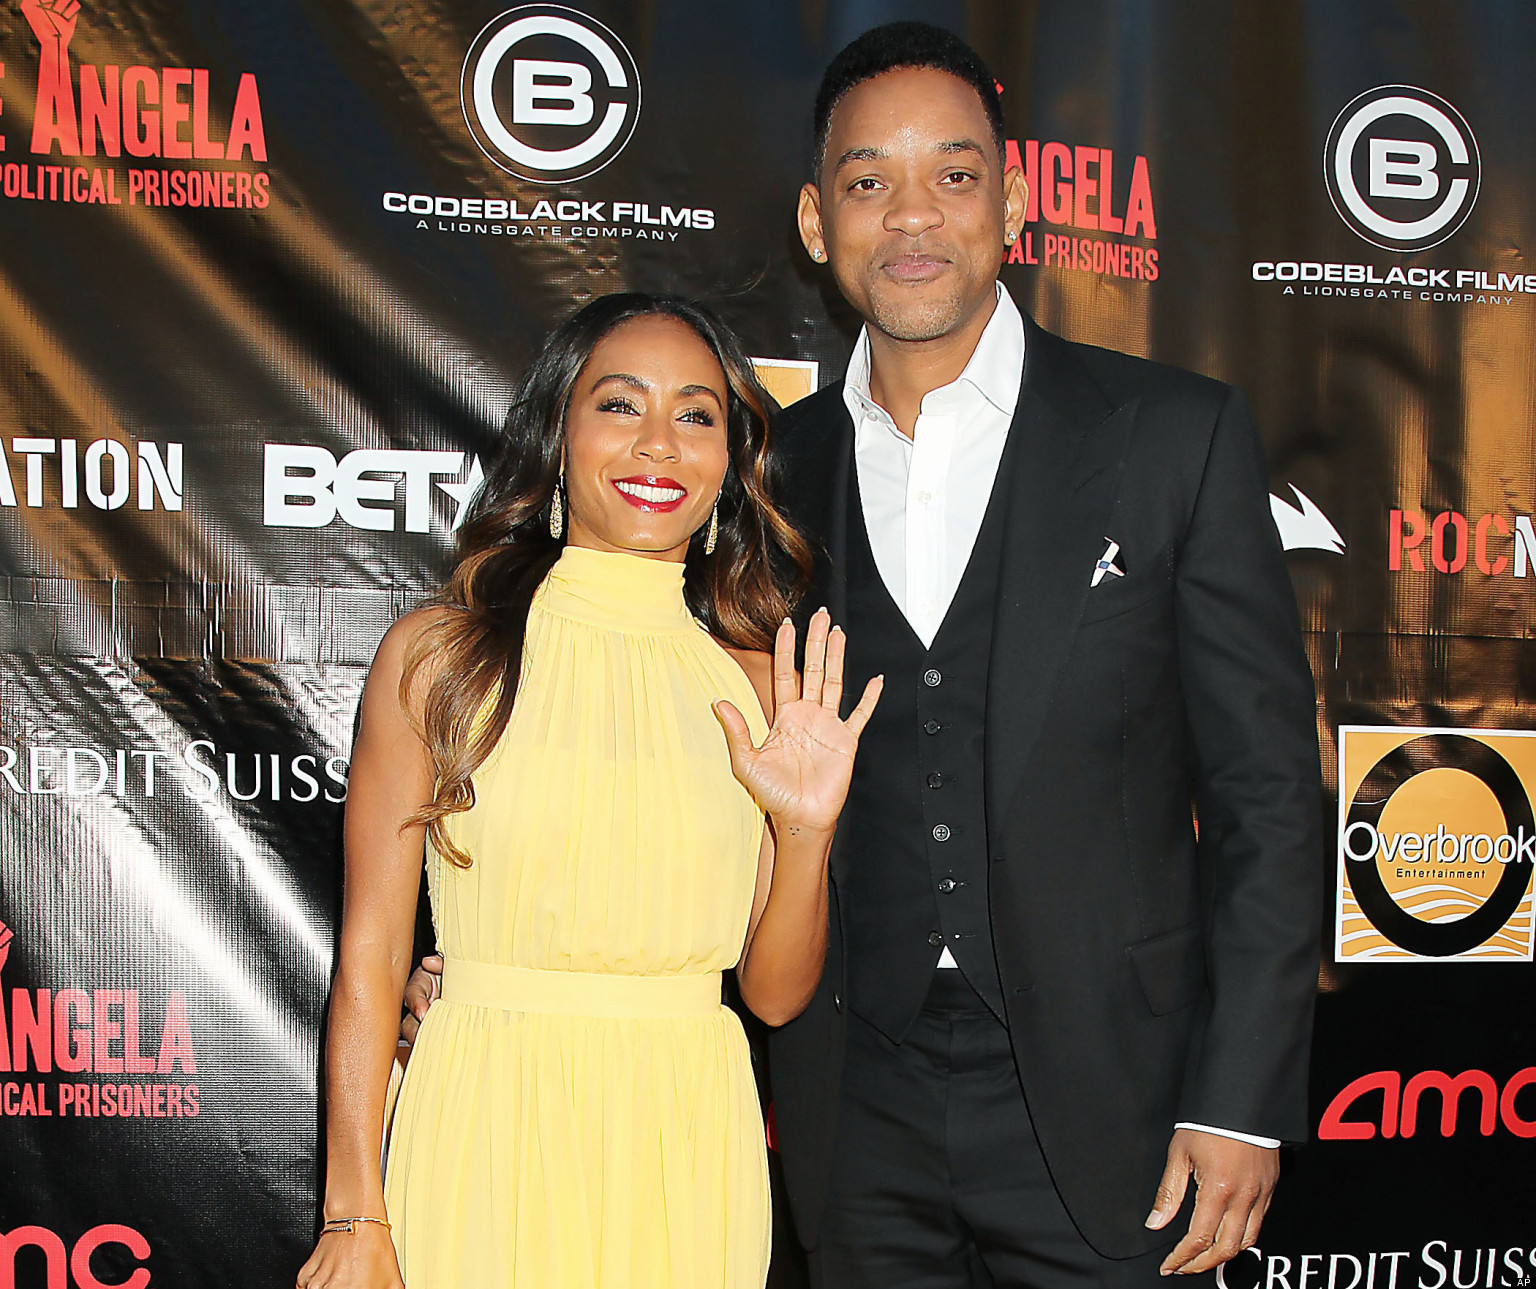 will smith and jada have an open relationship